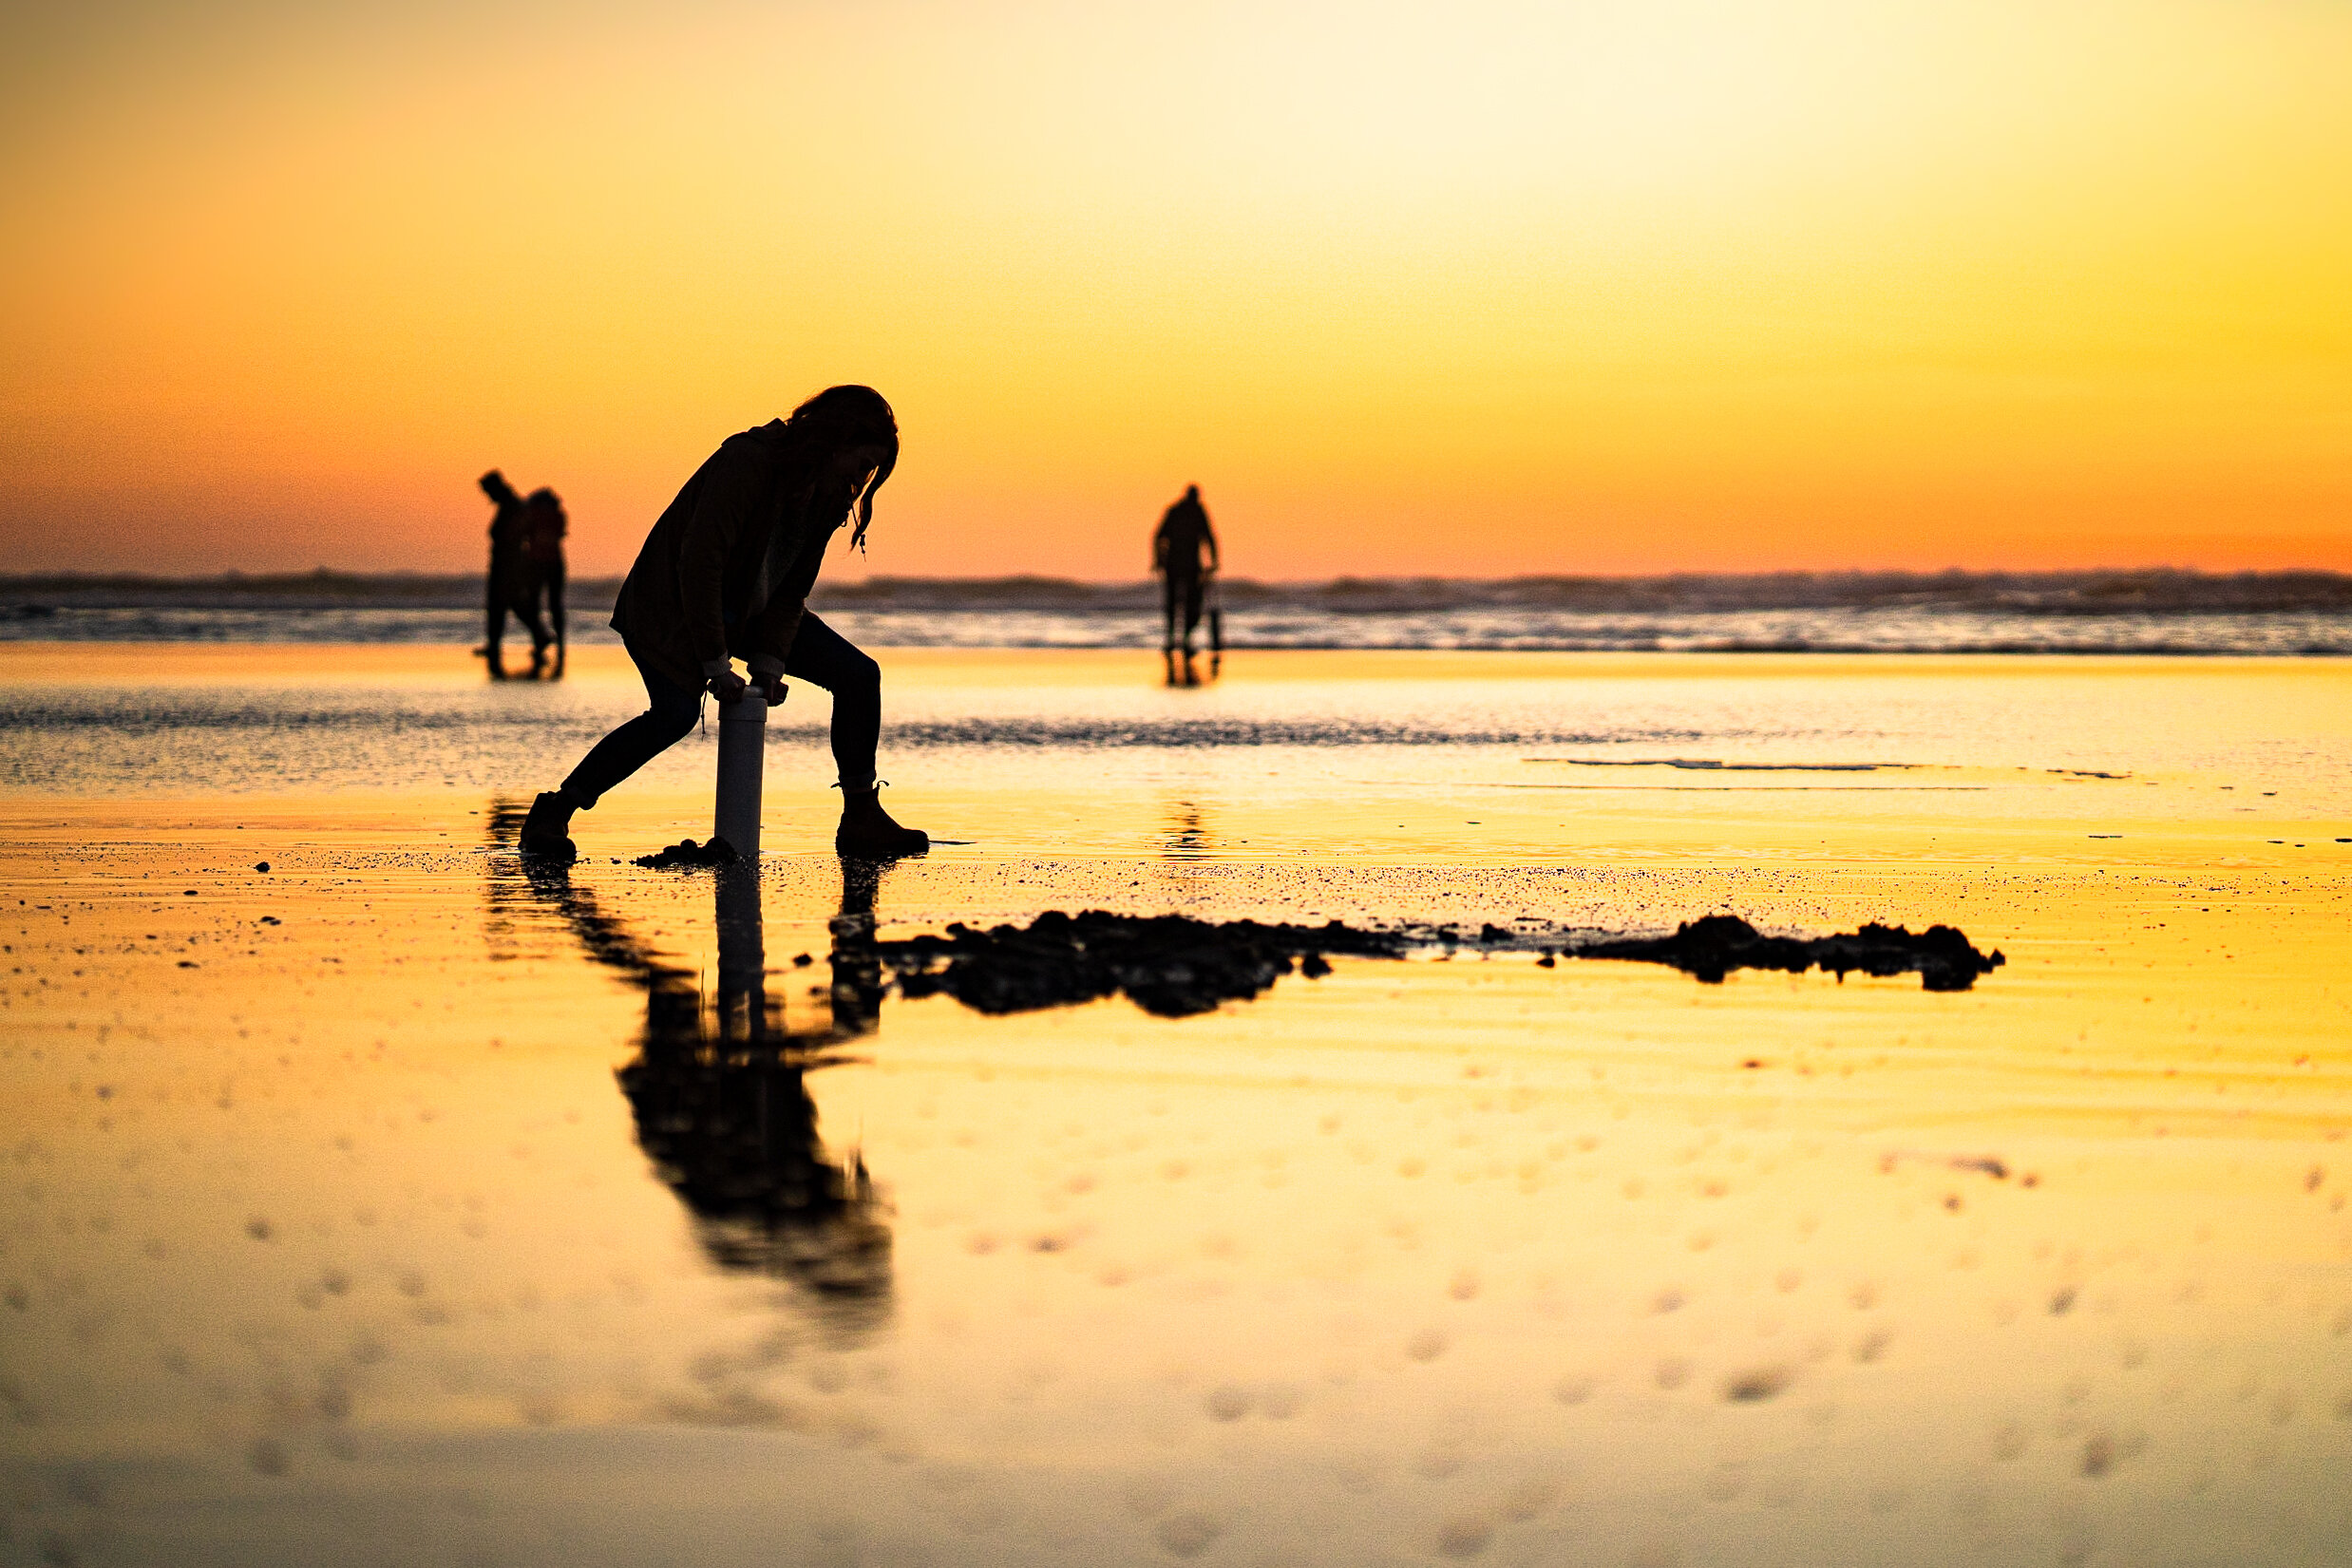 Razor clam season is here! - It's about to get clammy in Westport